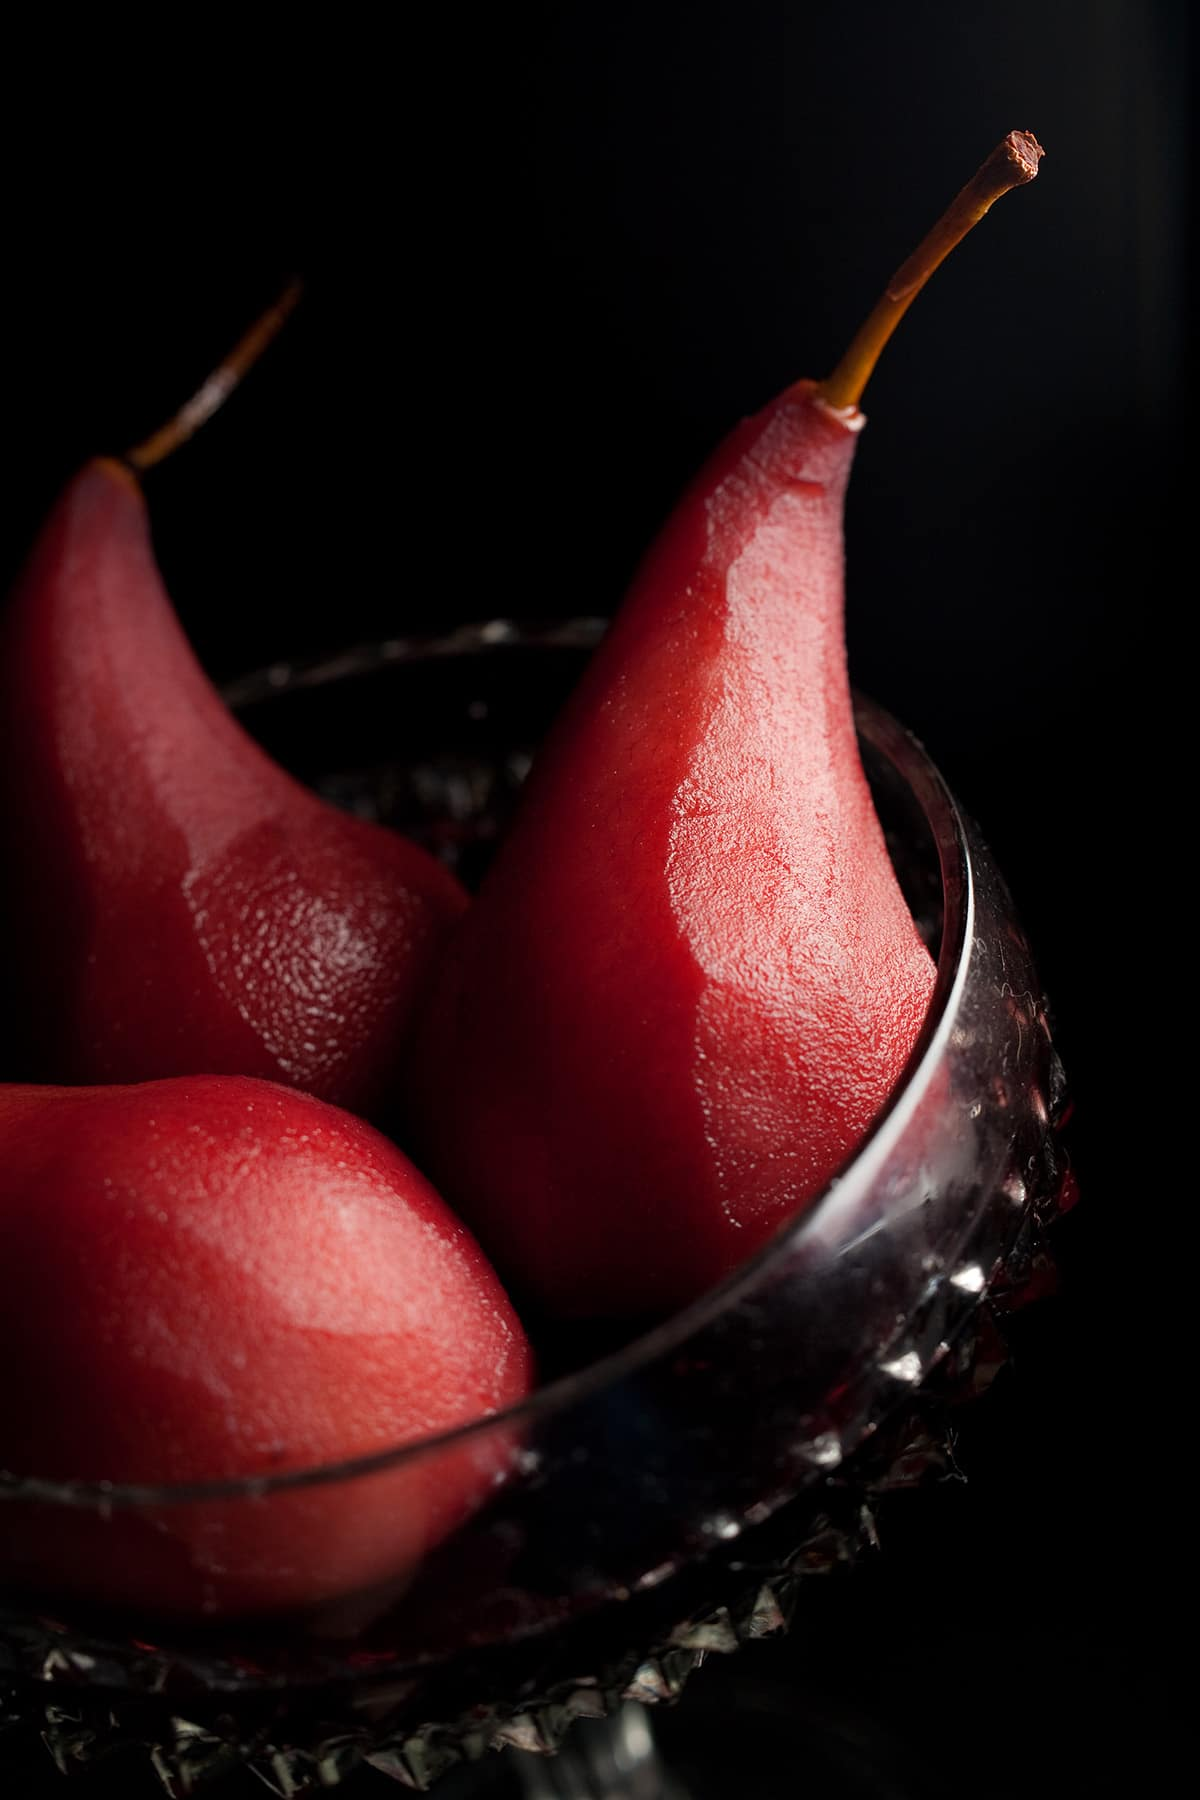 3 wine poached pears in a large, faceted goblet.